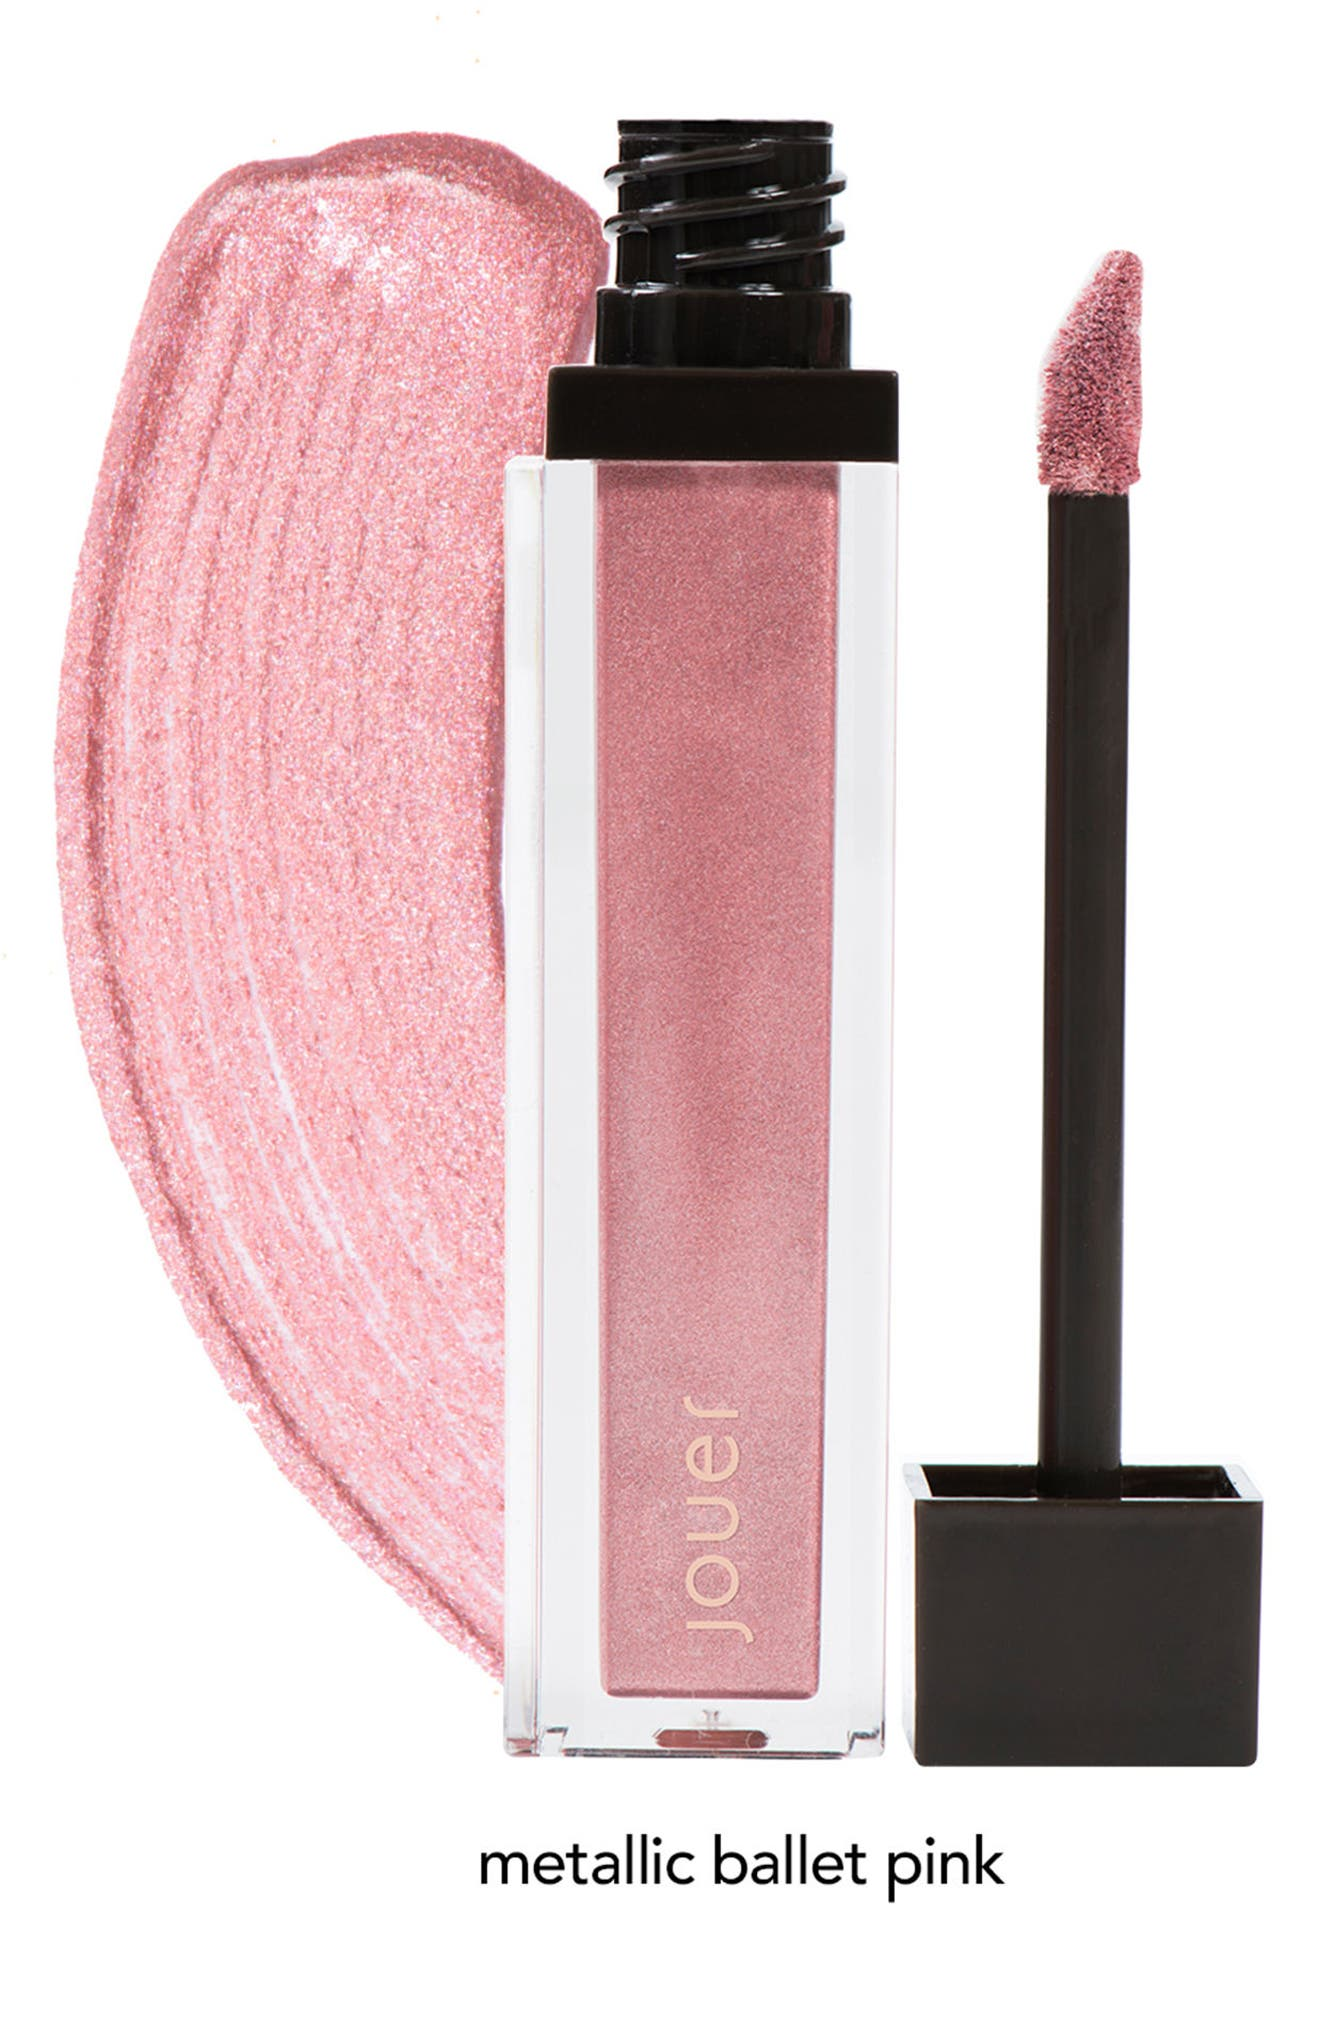 Melon & Citronade Rose Long-Wear Lip Crème Liquid Lipstick Duo,                             Alternate thumbnail 7, color,                             No Color